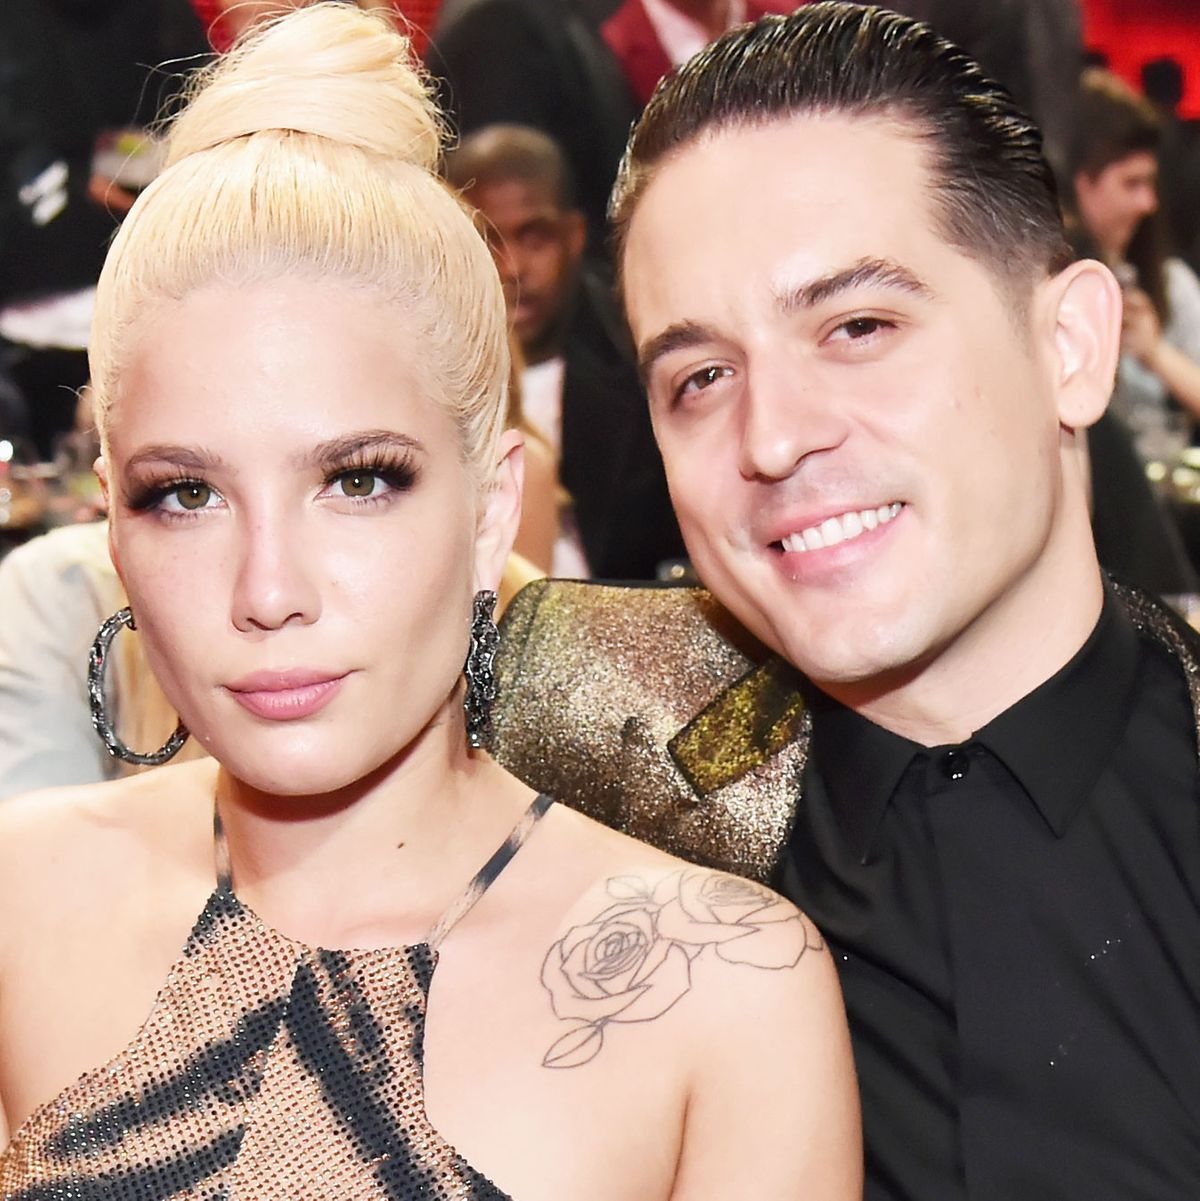 Halsey's New Song About G-Eazy Quotes 'Cry Me a River'